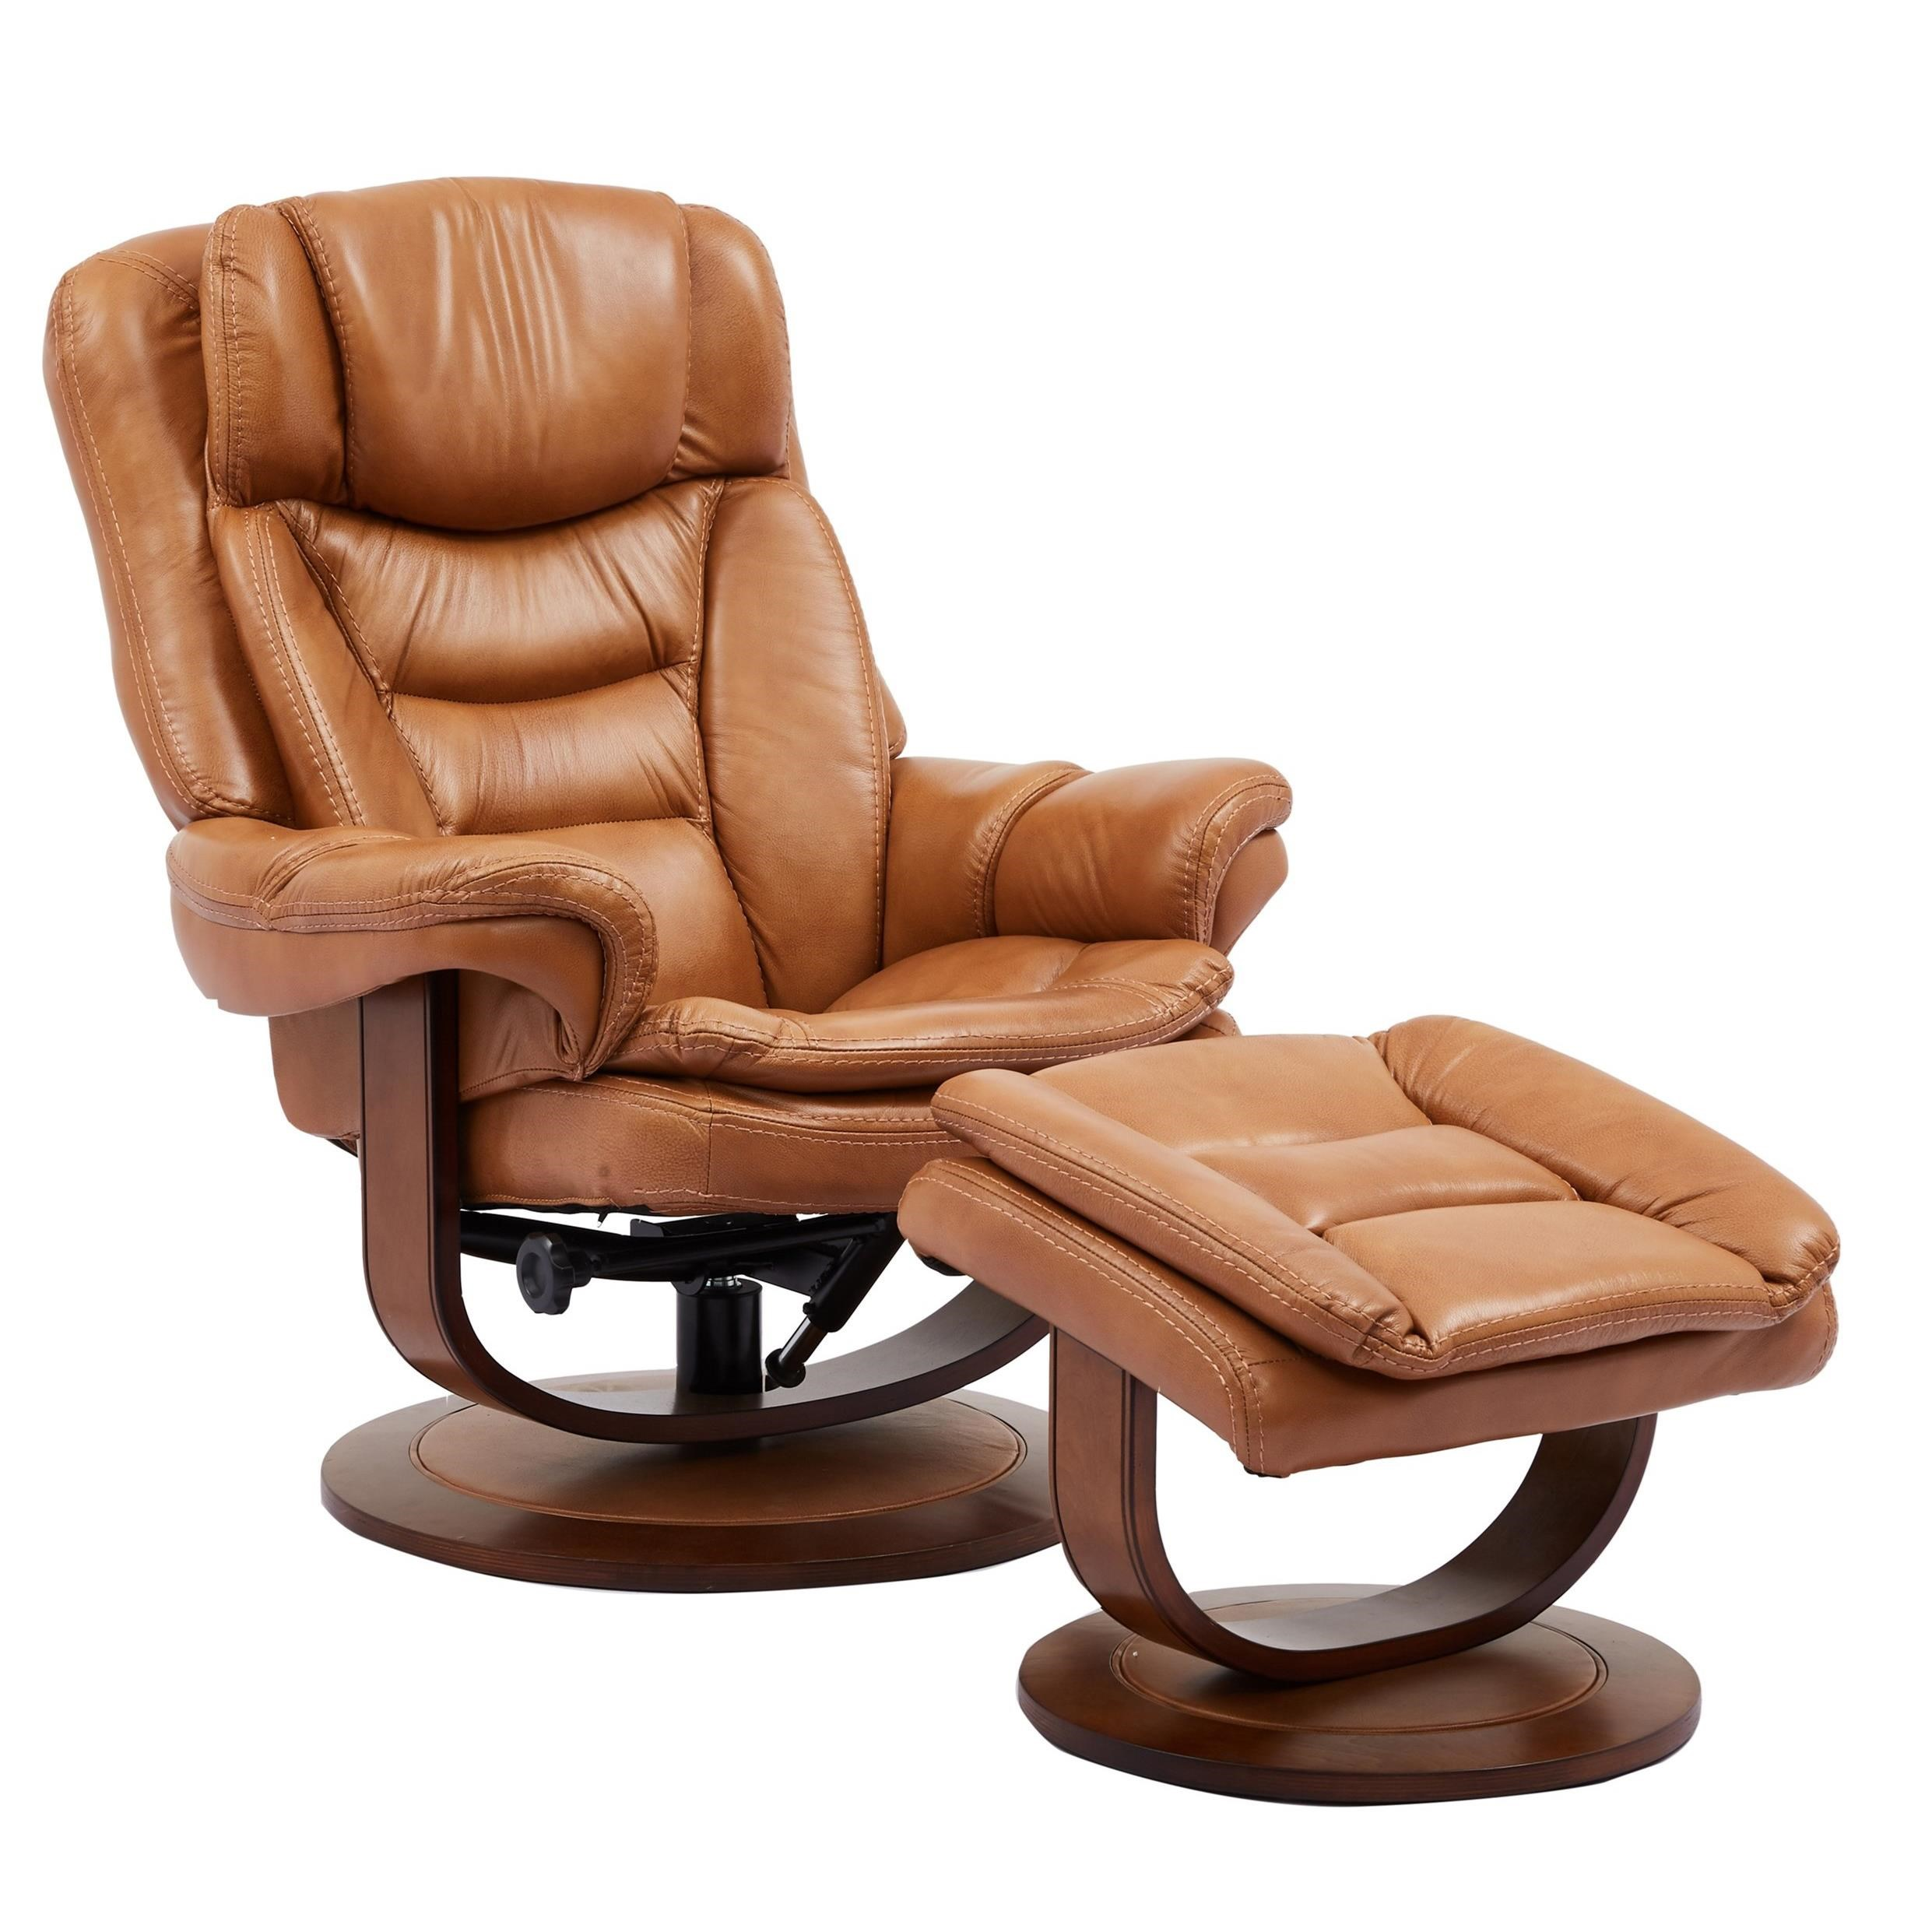 Contemporary Reclining Chair and Ottoman